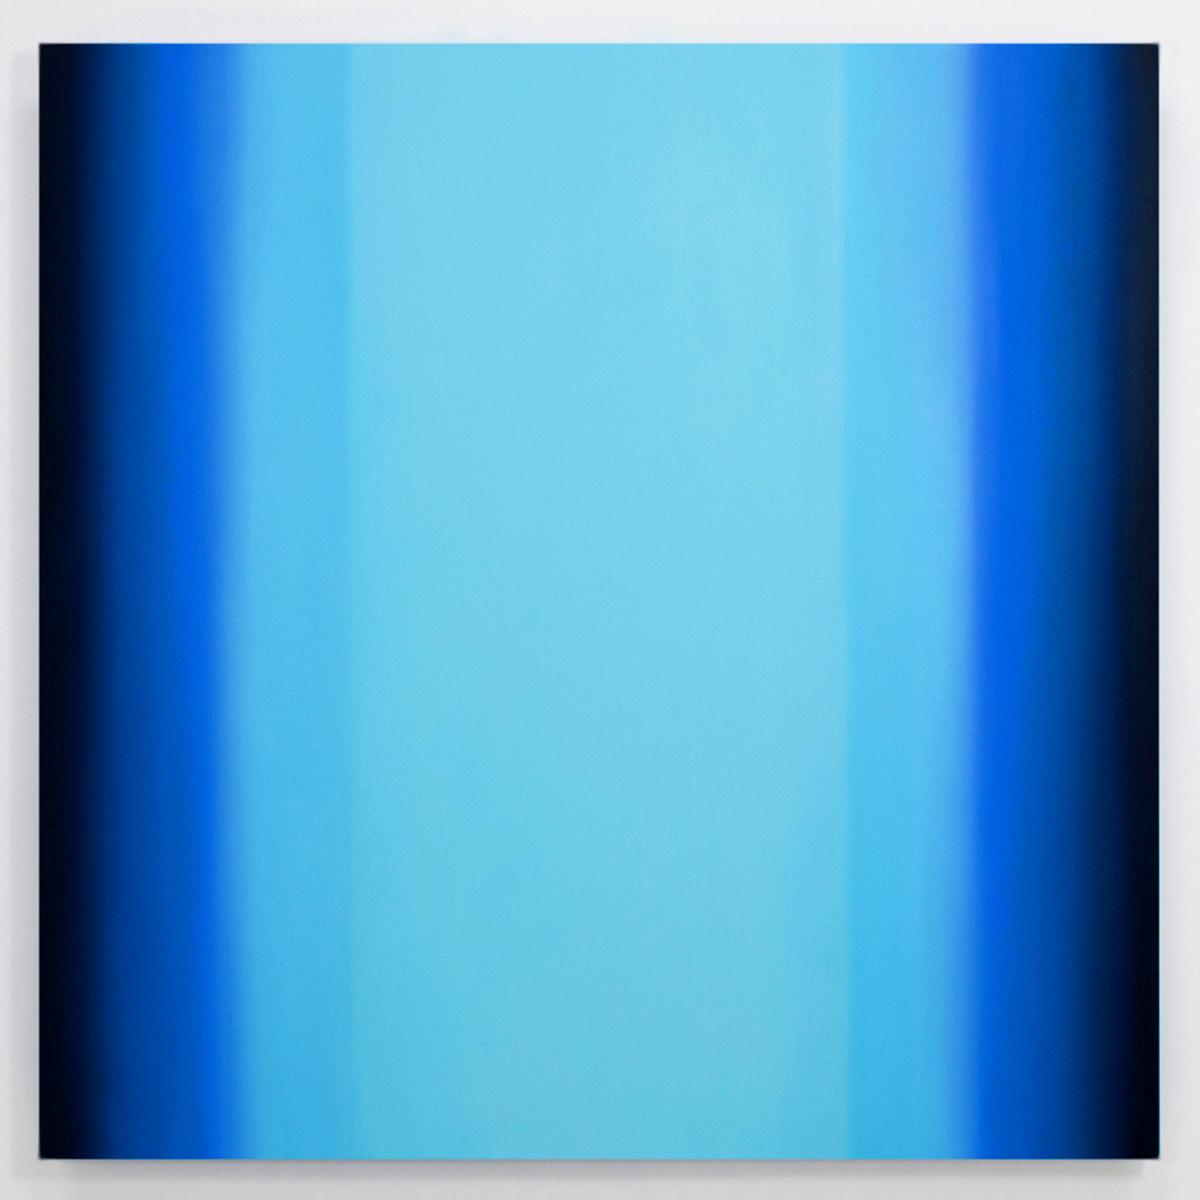 Inevitability of Truth 3-S7272 Square (Blue Orange/Blue Light), 2015, oil on canvas on custom beveled stretcher, 72 x 72 in. (183 x 183 cm.)